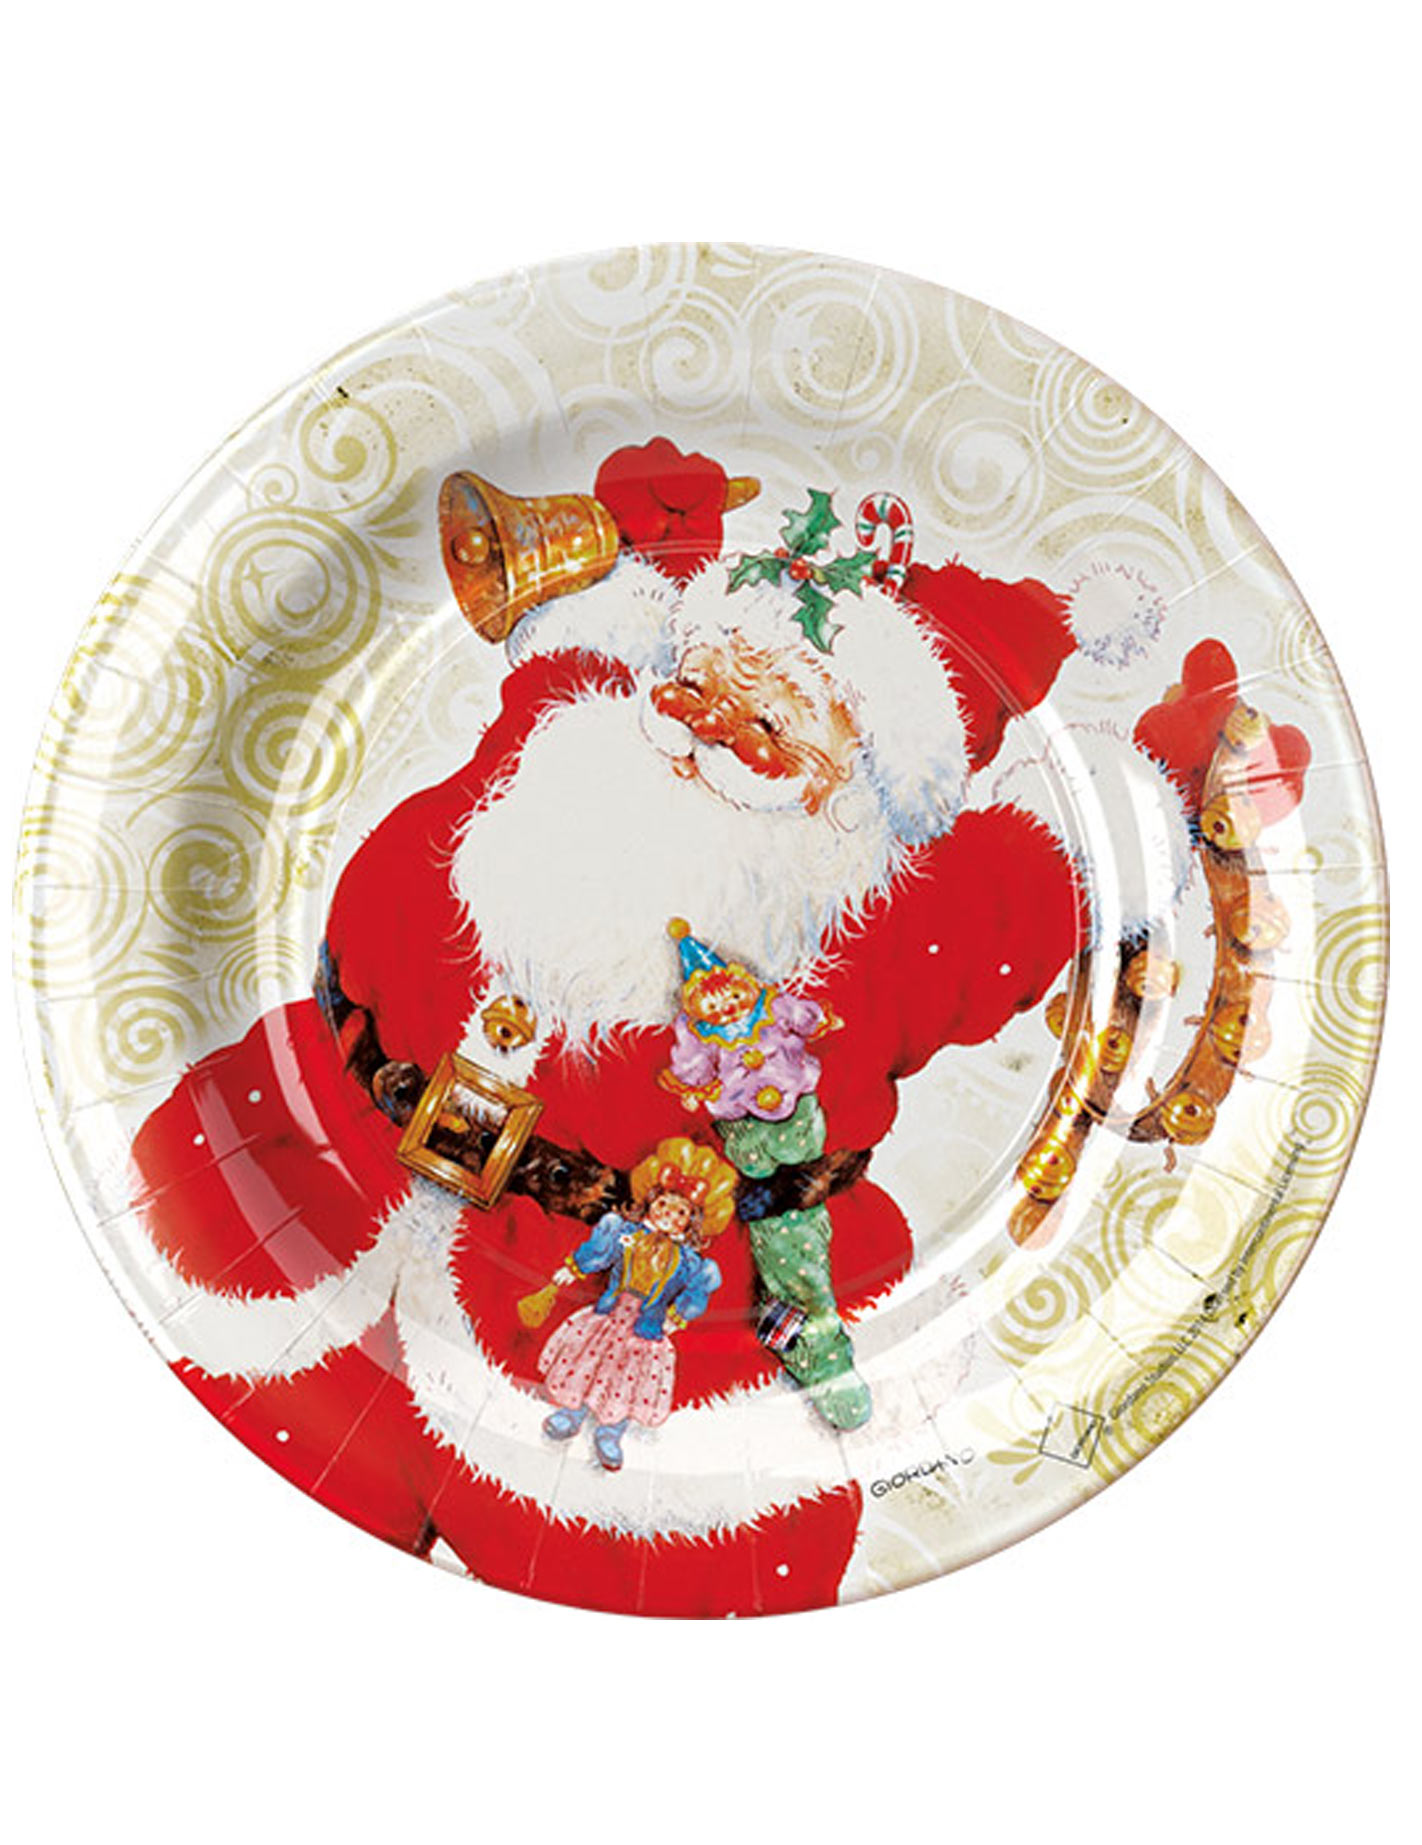 8 platos de pap noel 23 cm decoraci n y disfraces - Platos de decoracion ...